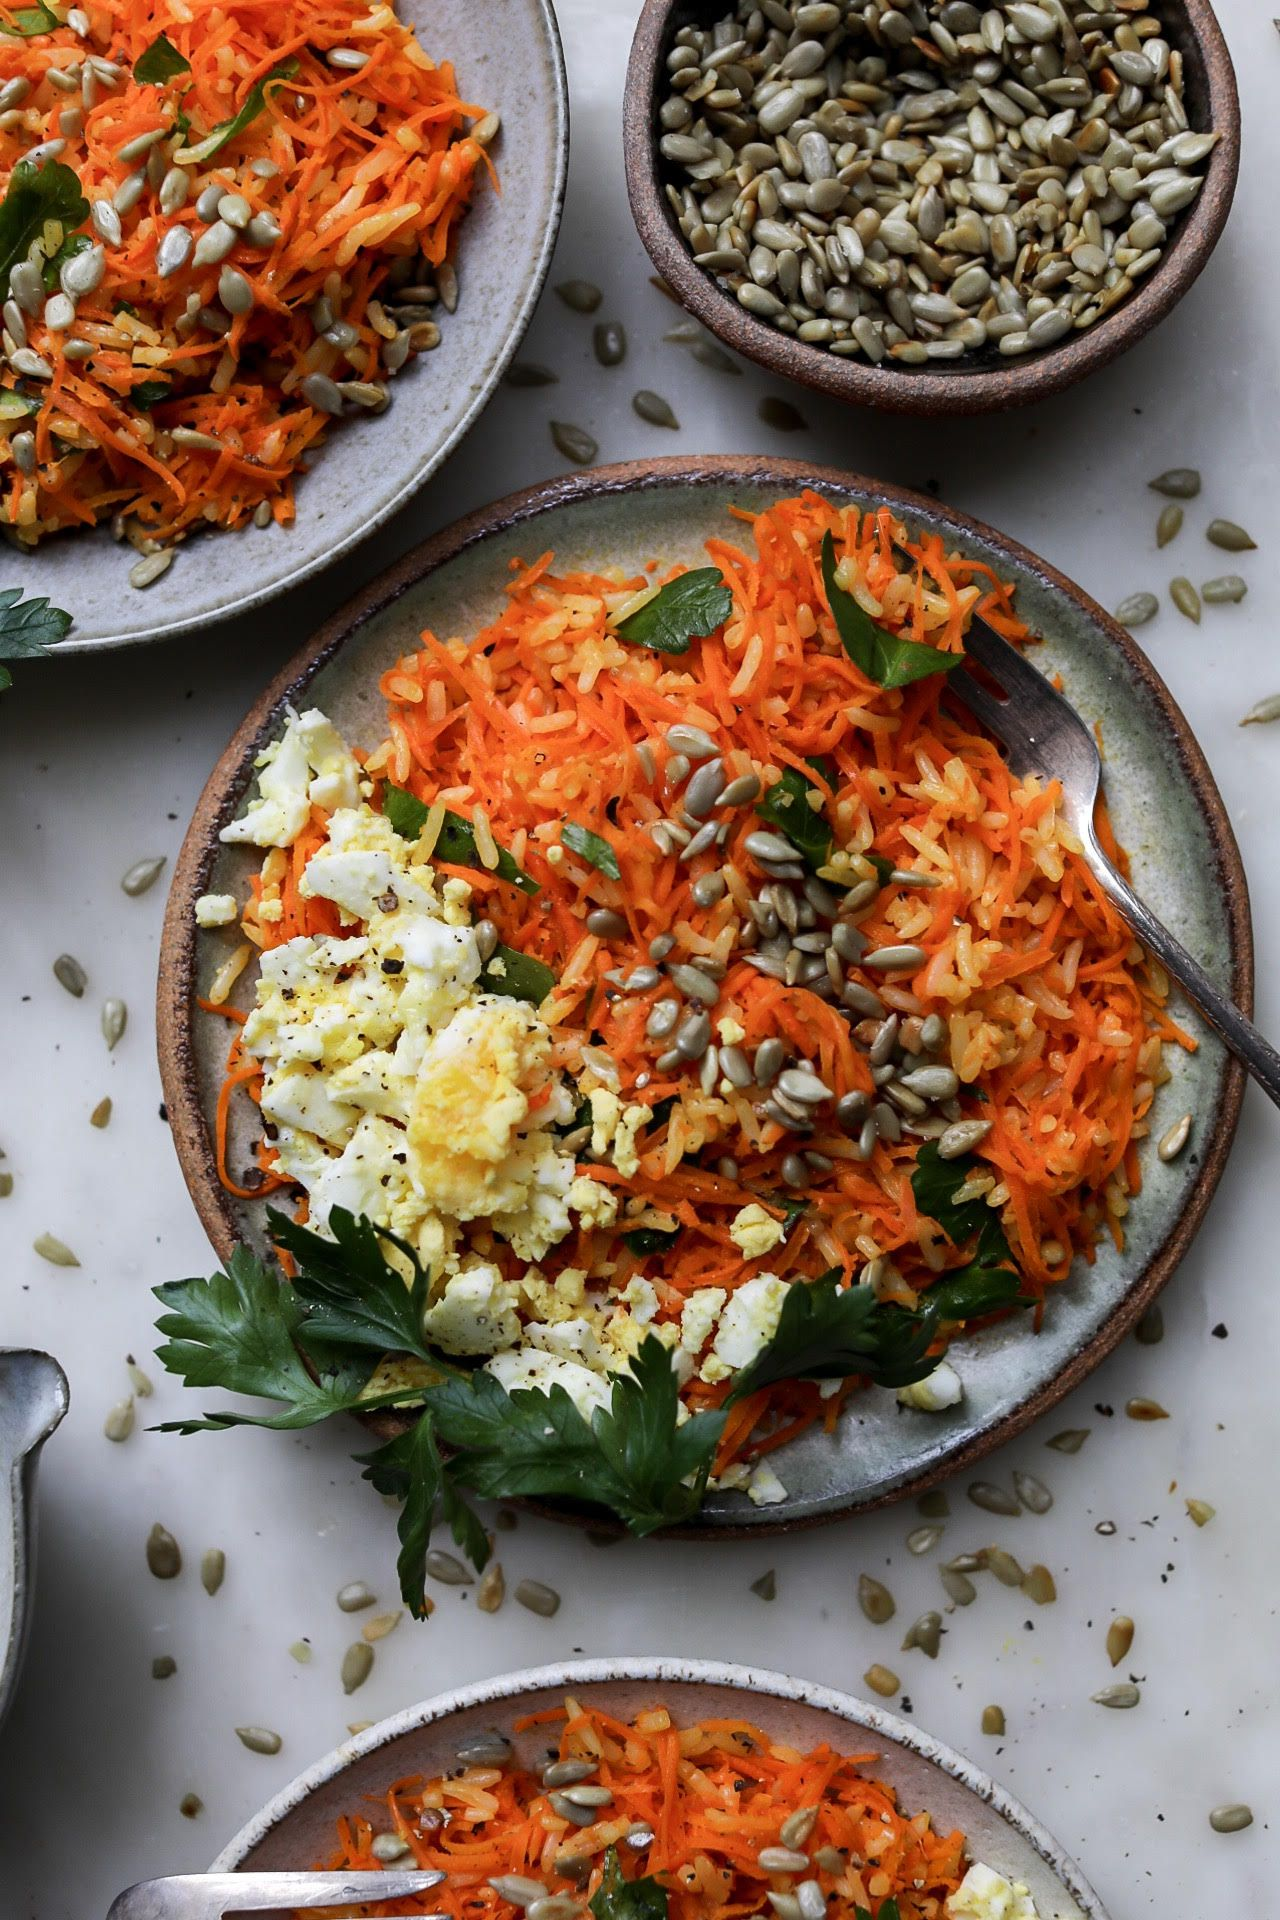 Carrot and Rice Salad